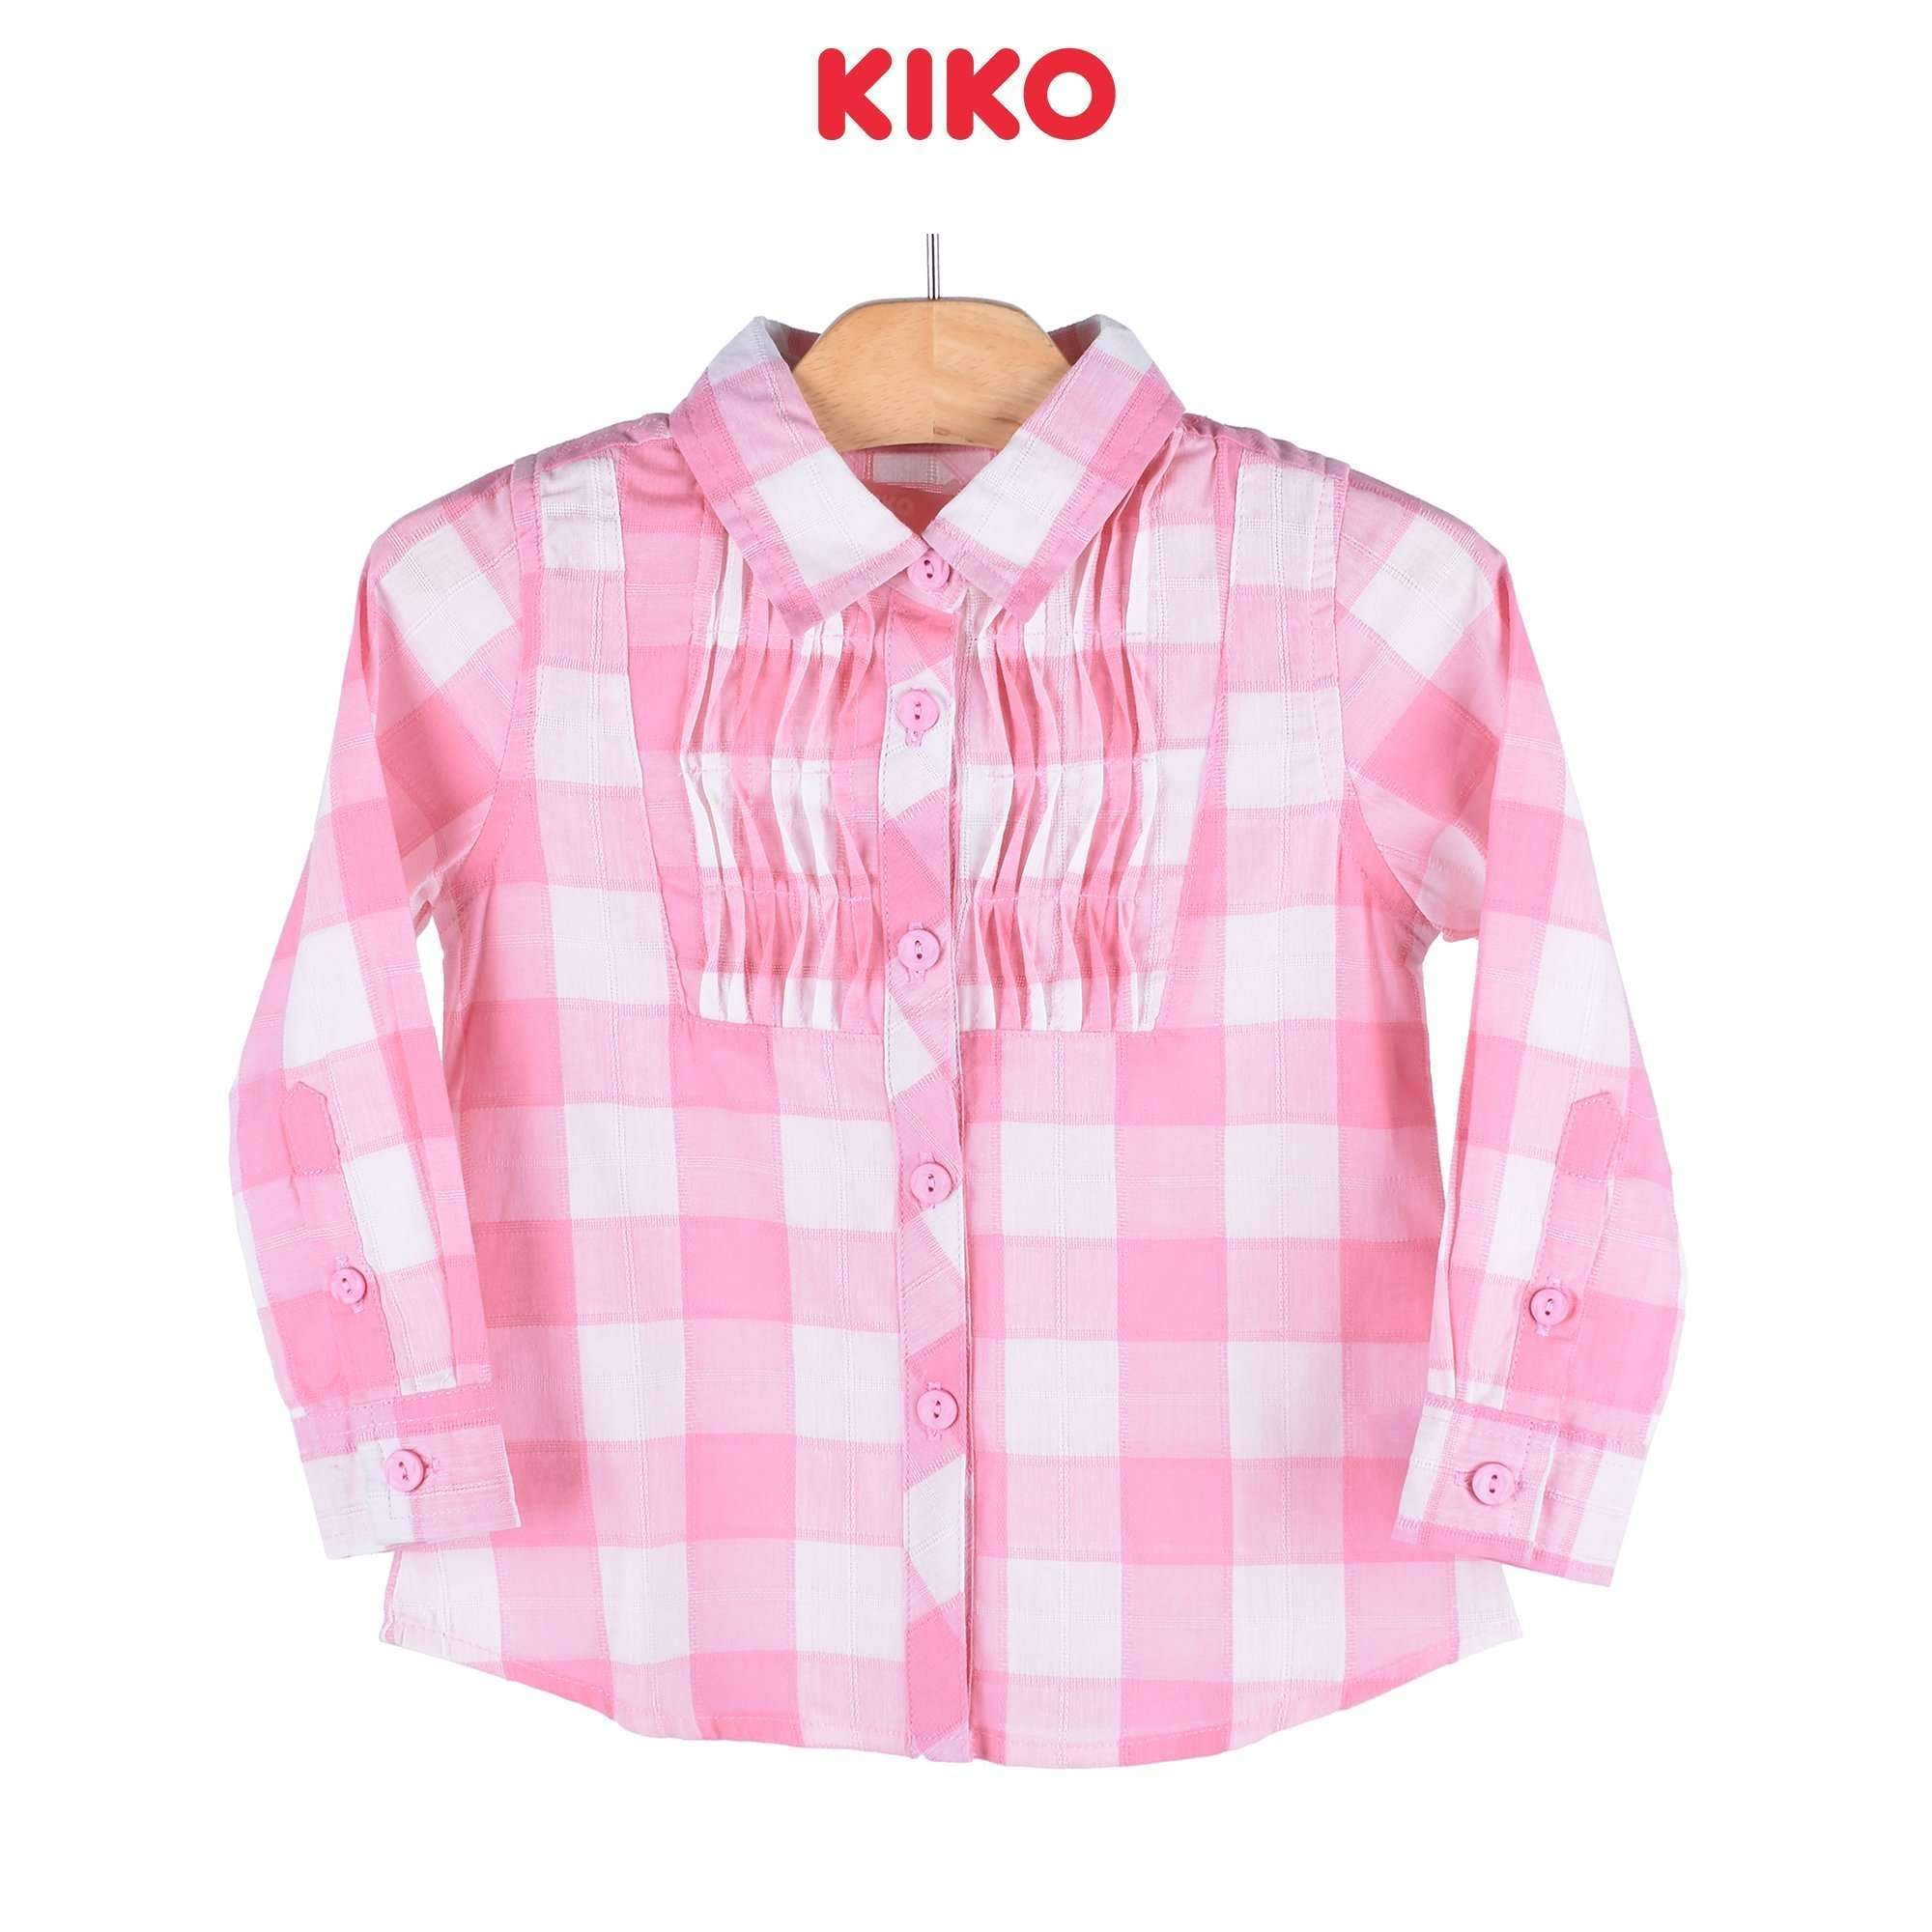 KIKO Girl Long Sleeve Blouse 125048-152 : Buy KIKO online at CMG.MY